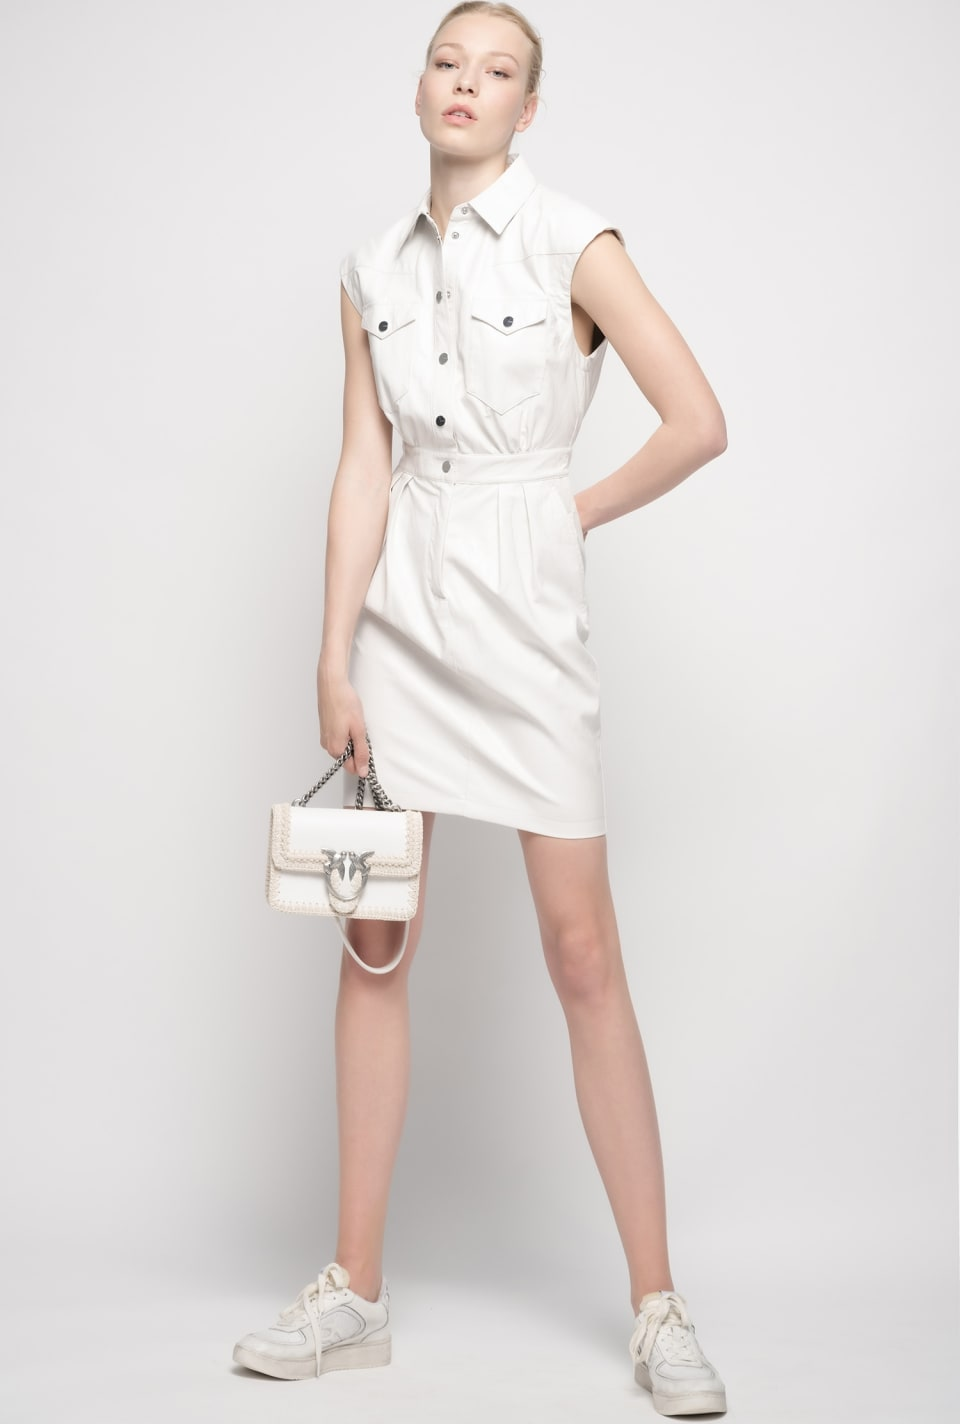 Leather look dress - Pinko